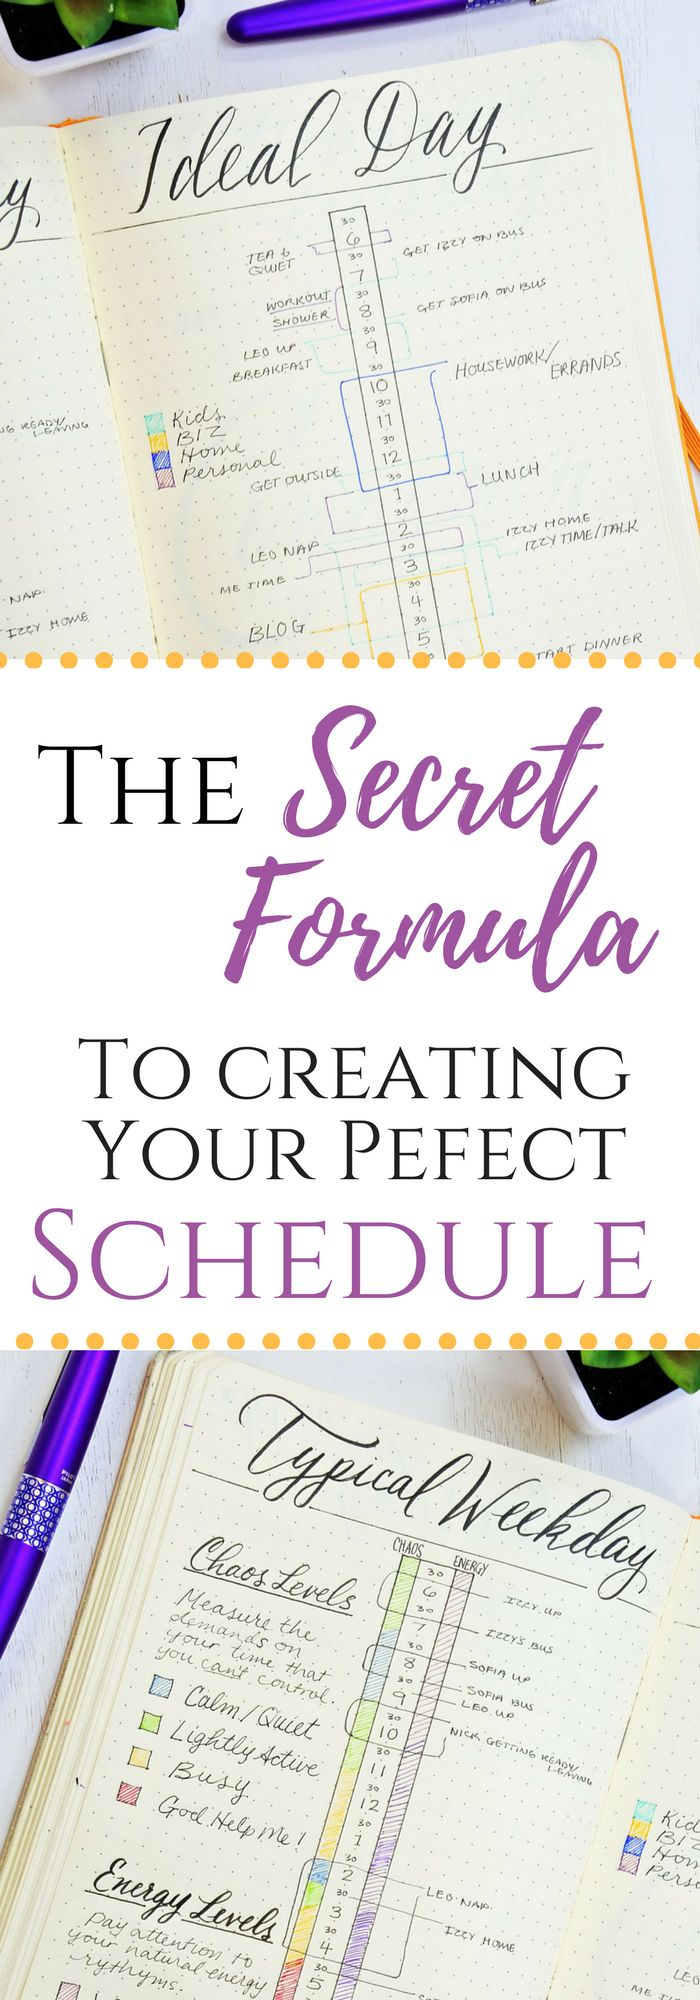 Create a schedule you love without beating yourself up! #bulletjournal #productivity #bujo #planner